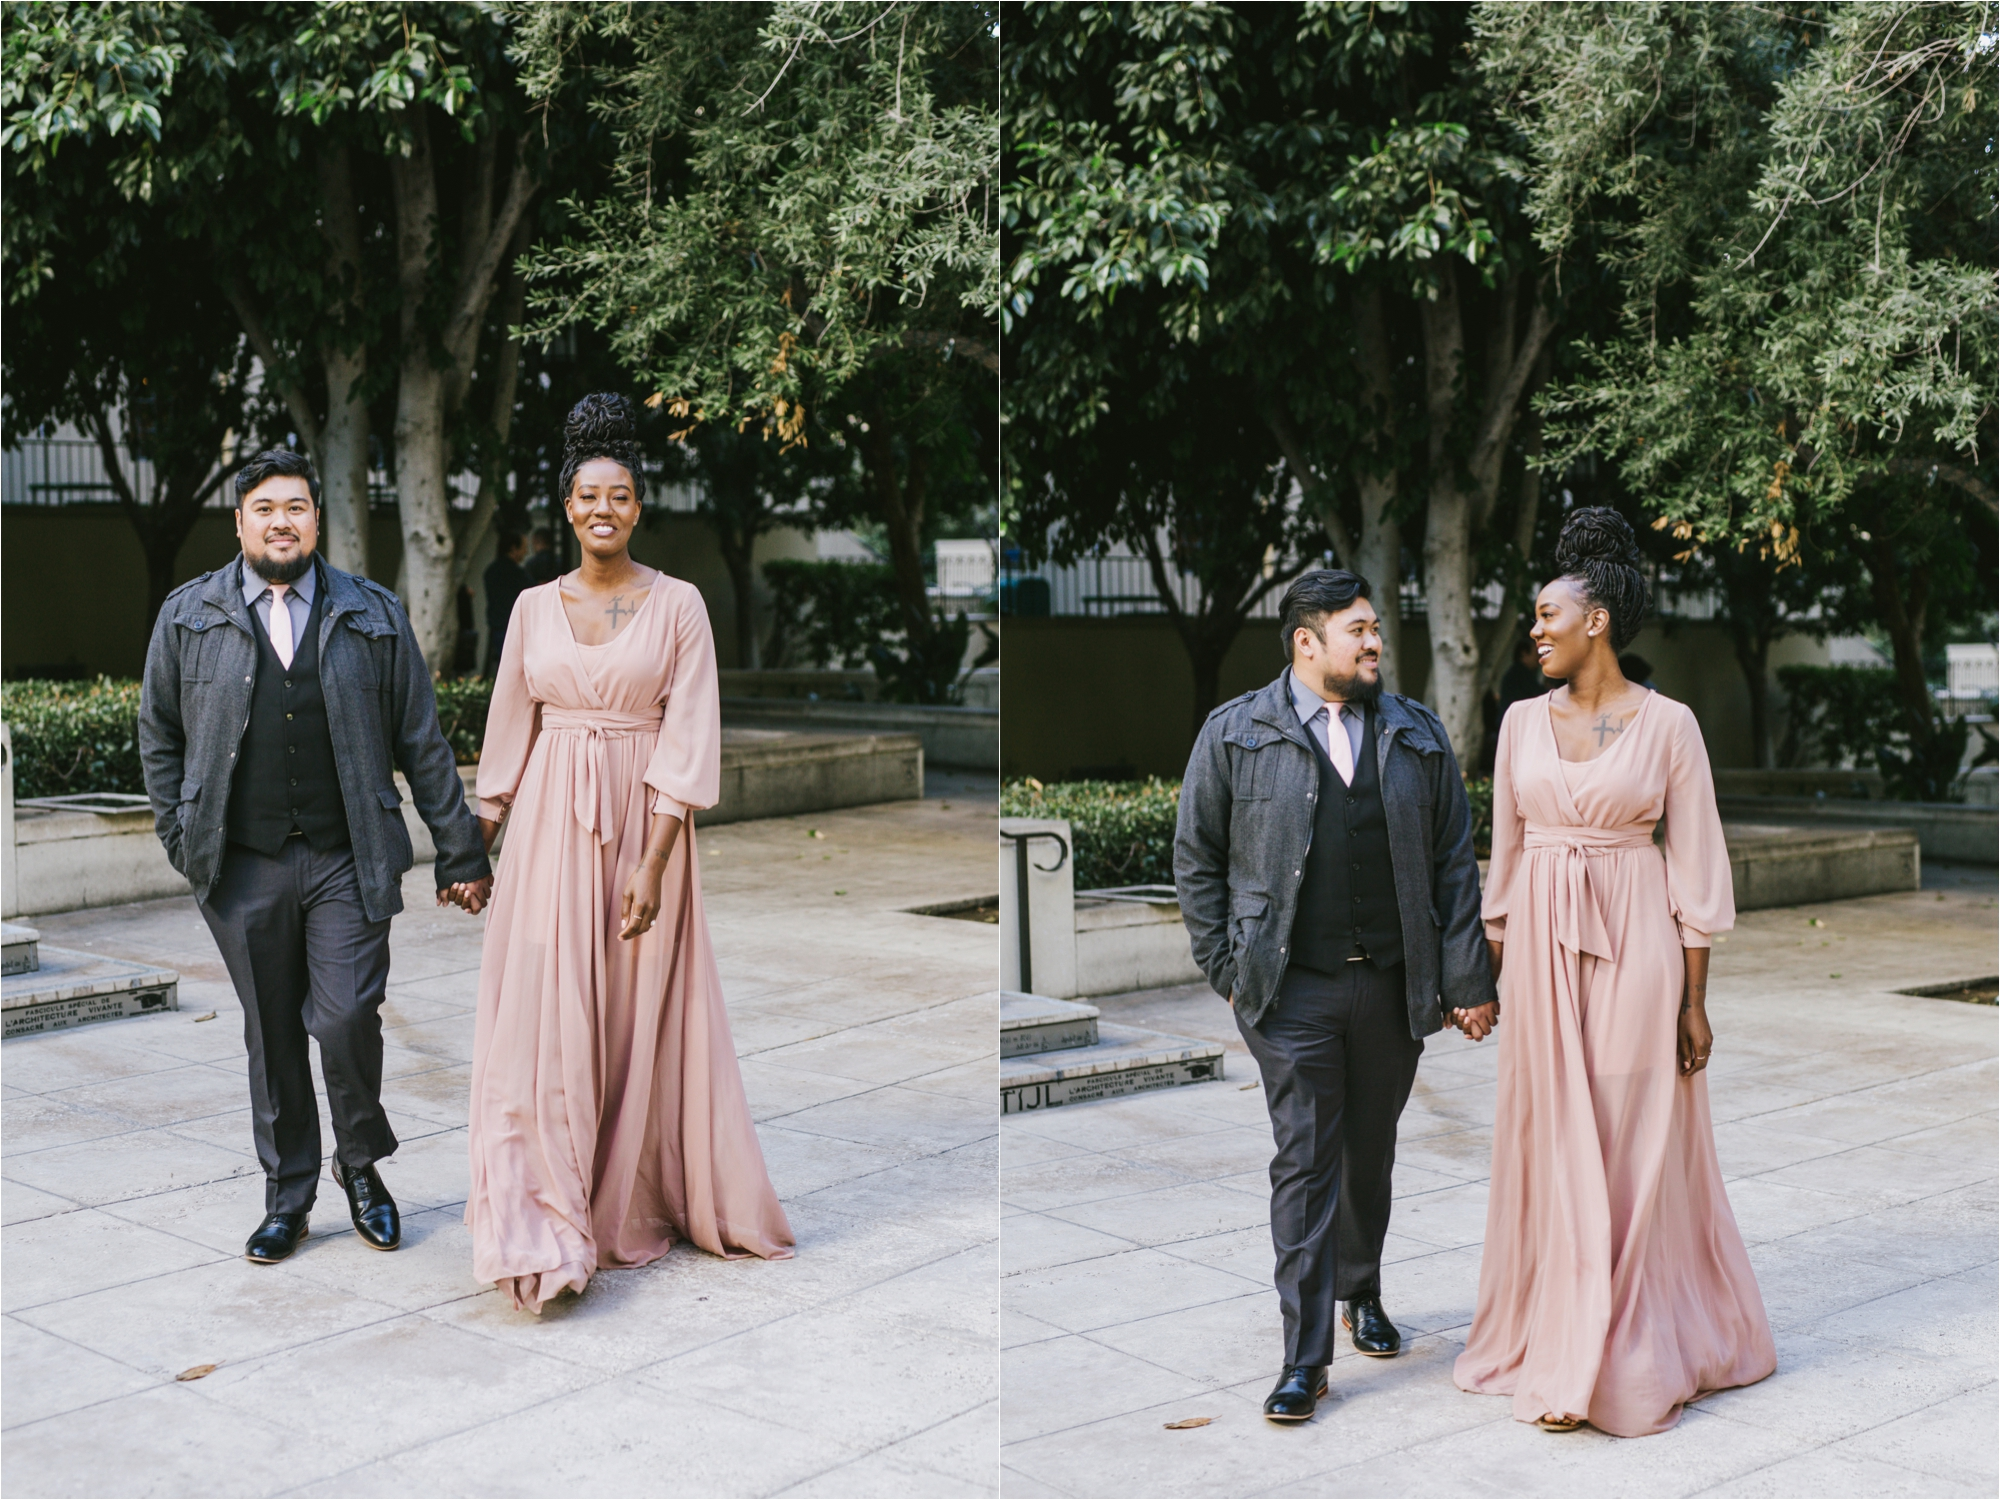 los angeles destination wedding engagement proposal photographer public library